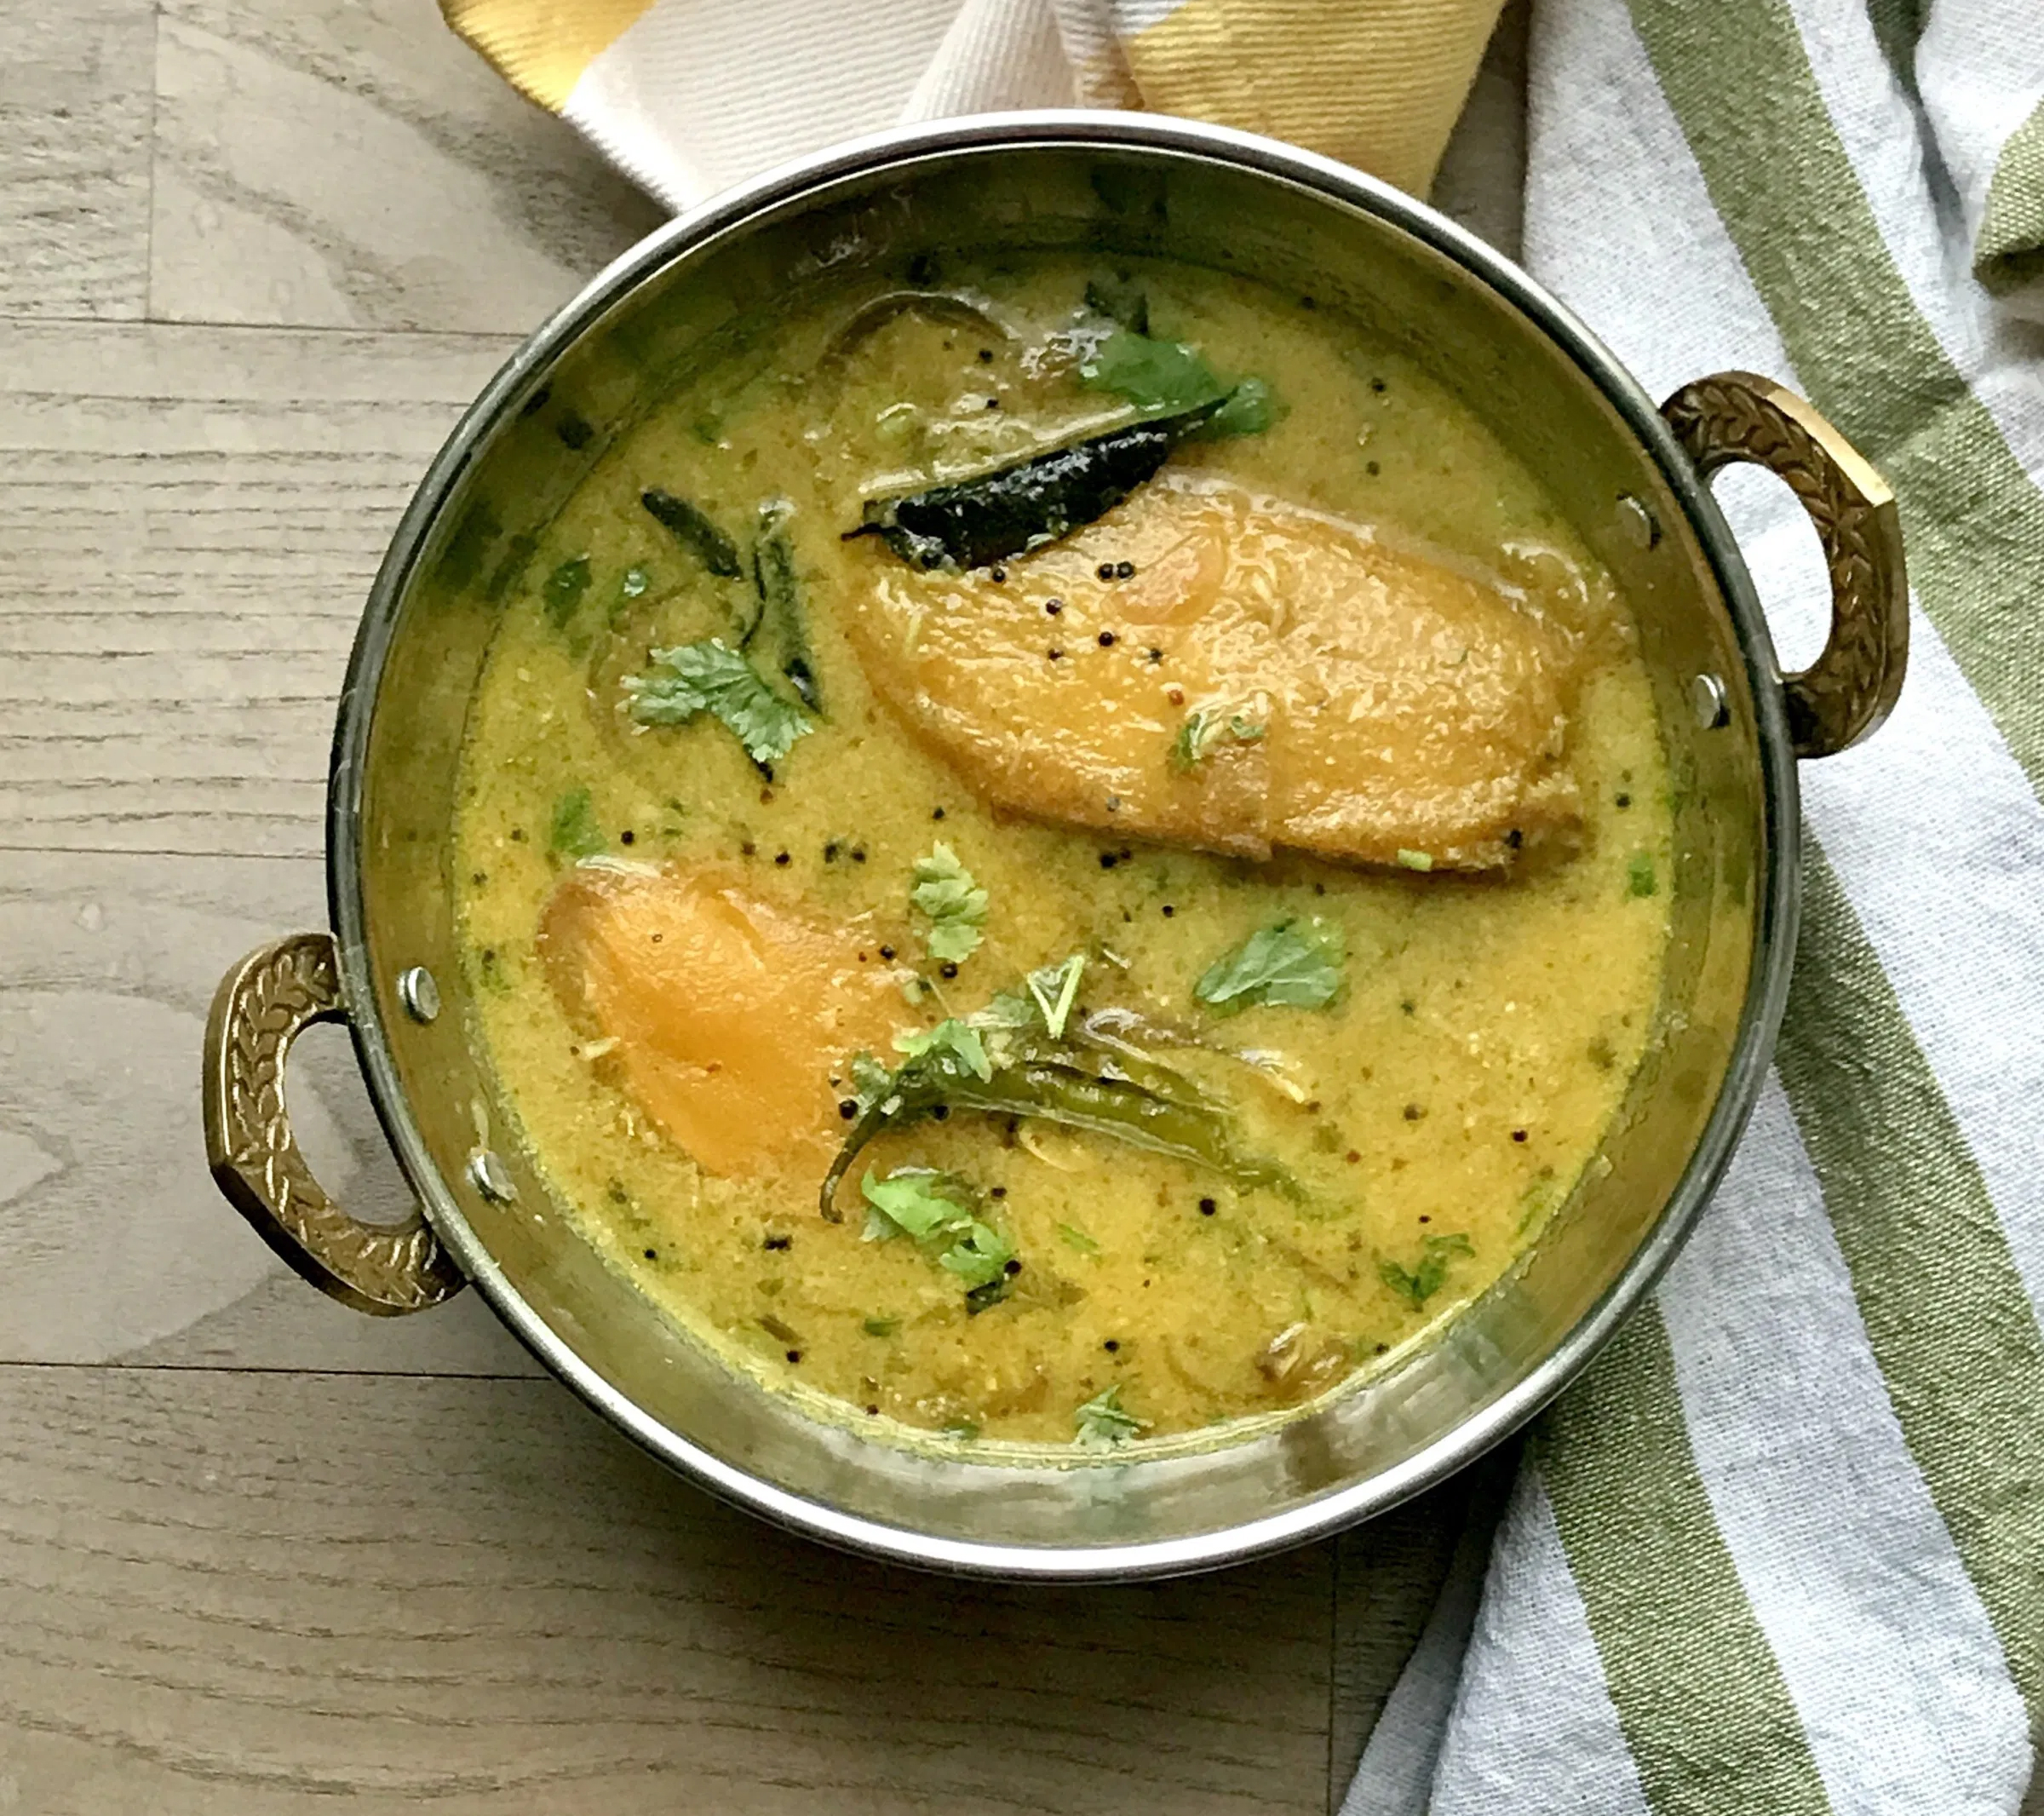 Coorg Style Kaad Manga Curry Or Sweet And Spicy Mango Curry - Best Coorgi Dishes To Try When In Coorg